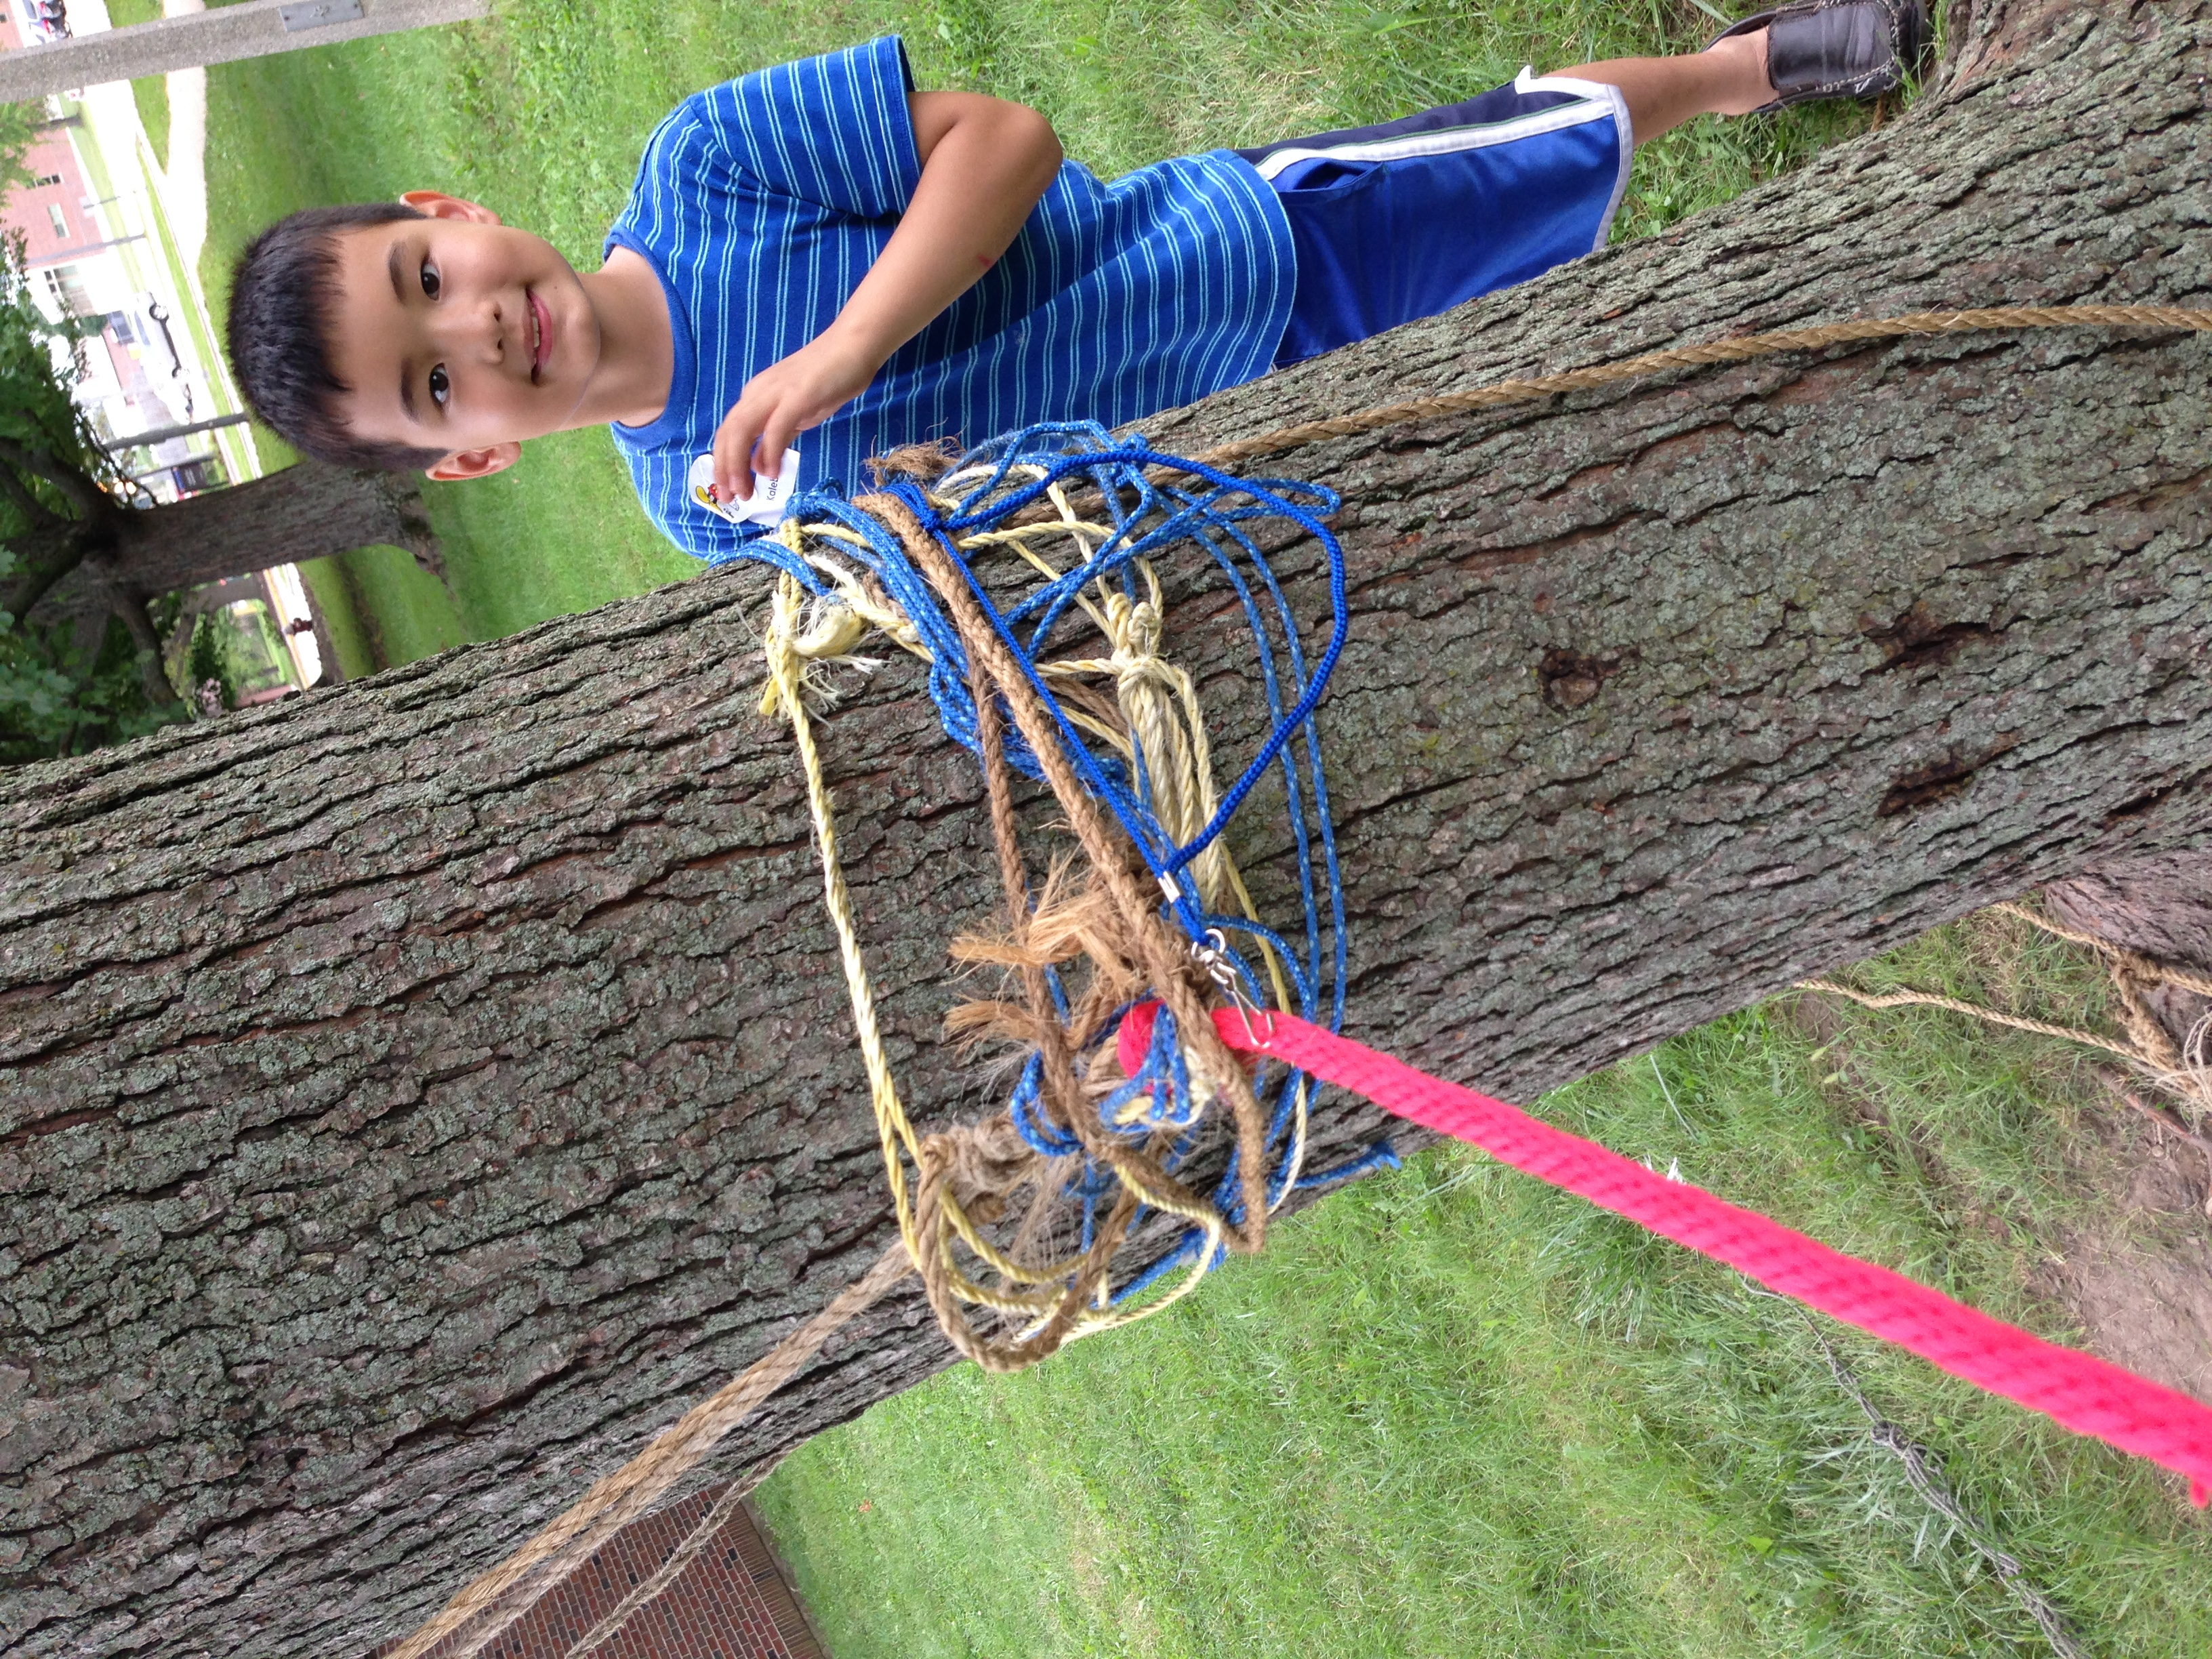 Stringing Up Hammocks